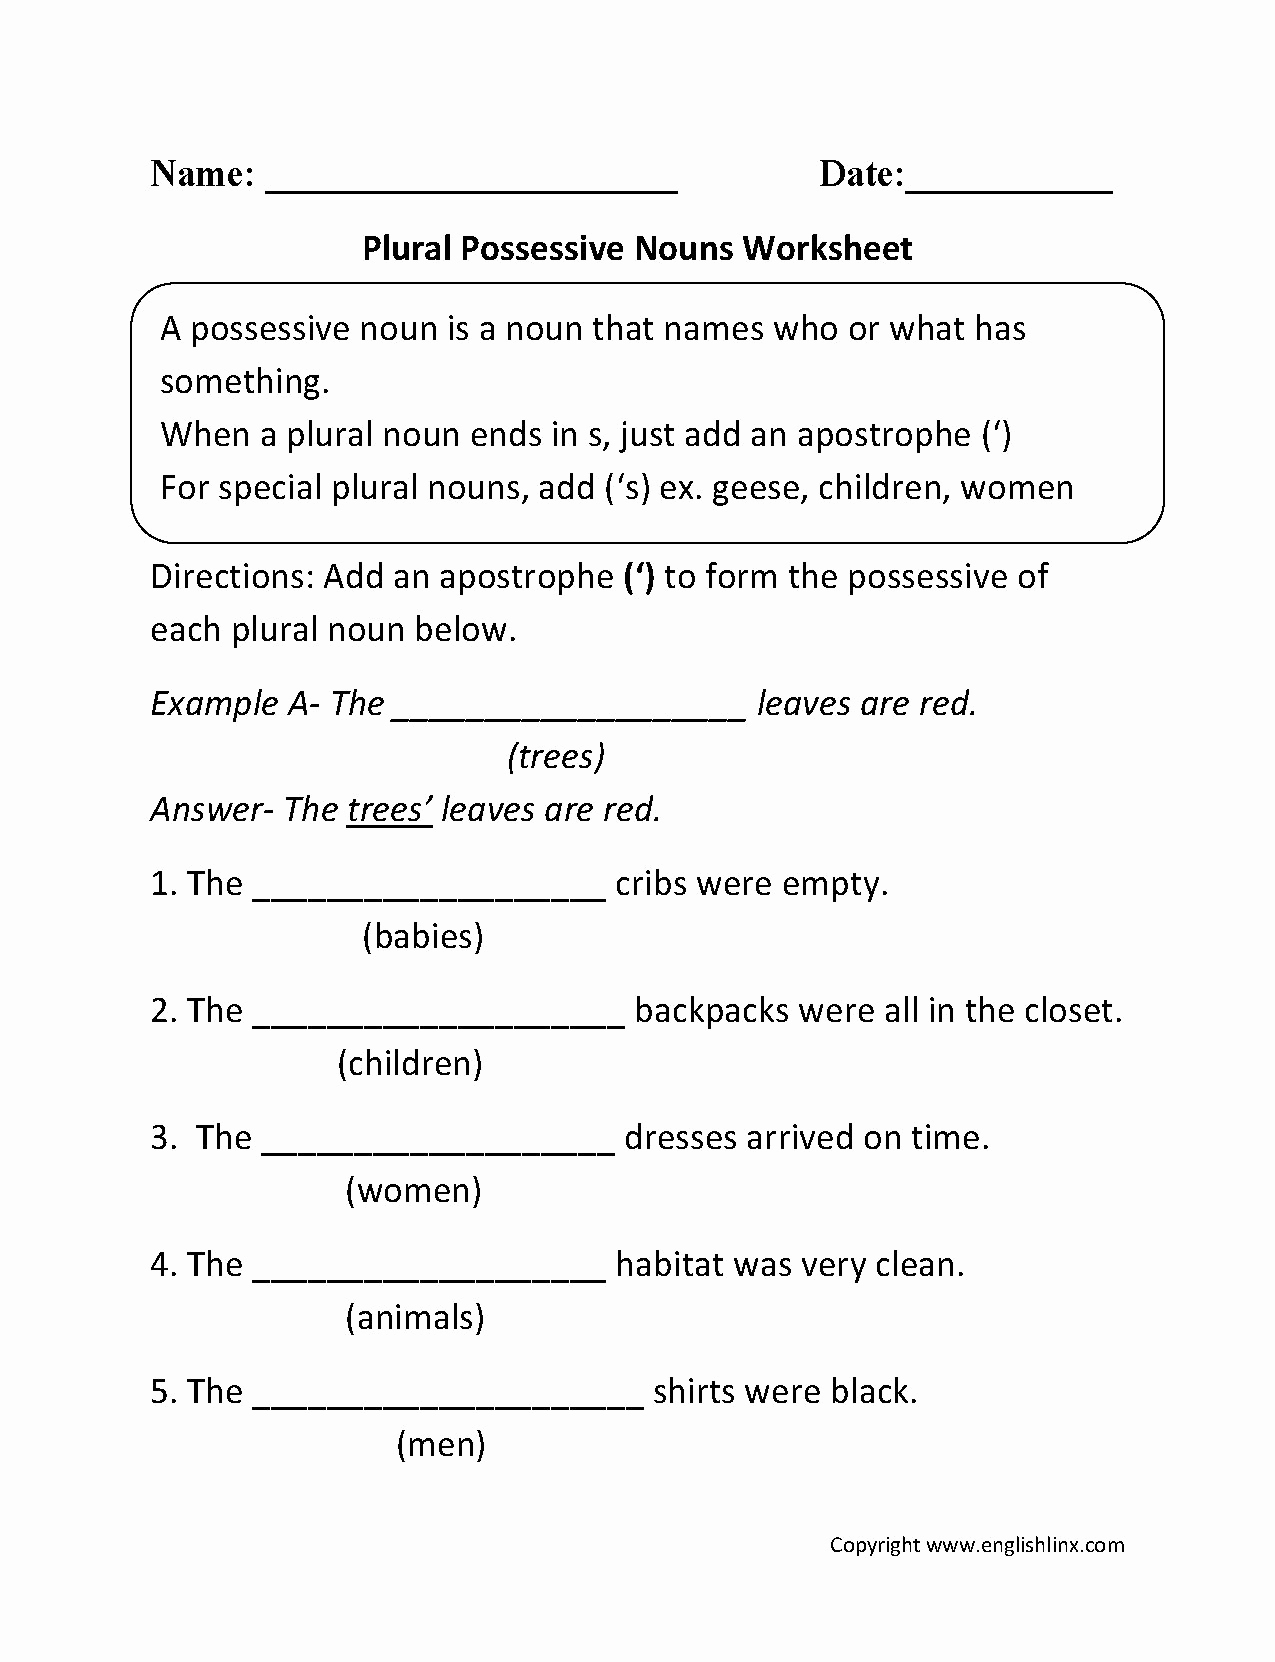 Possessive Pronouns Worksheet 3rd Grade New Pronoun Agreement Worksheet Pdf